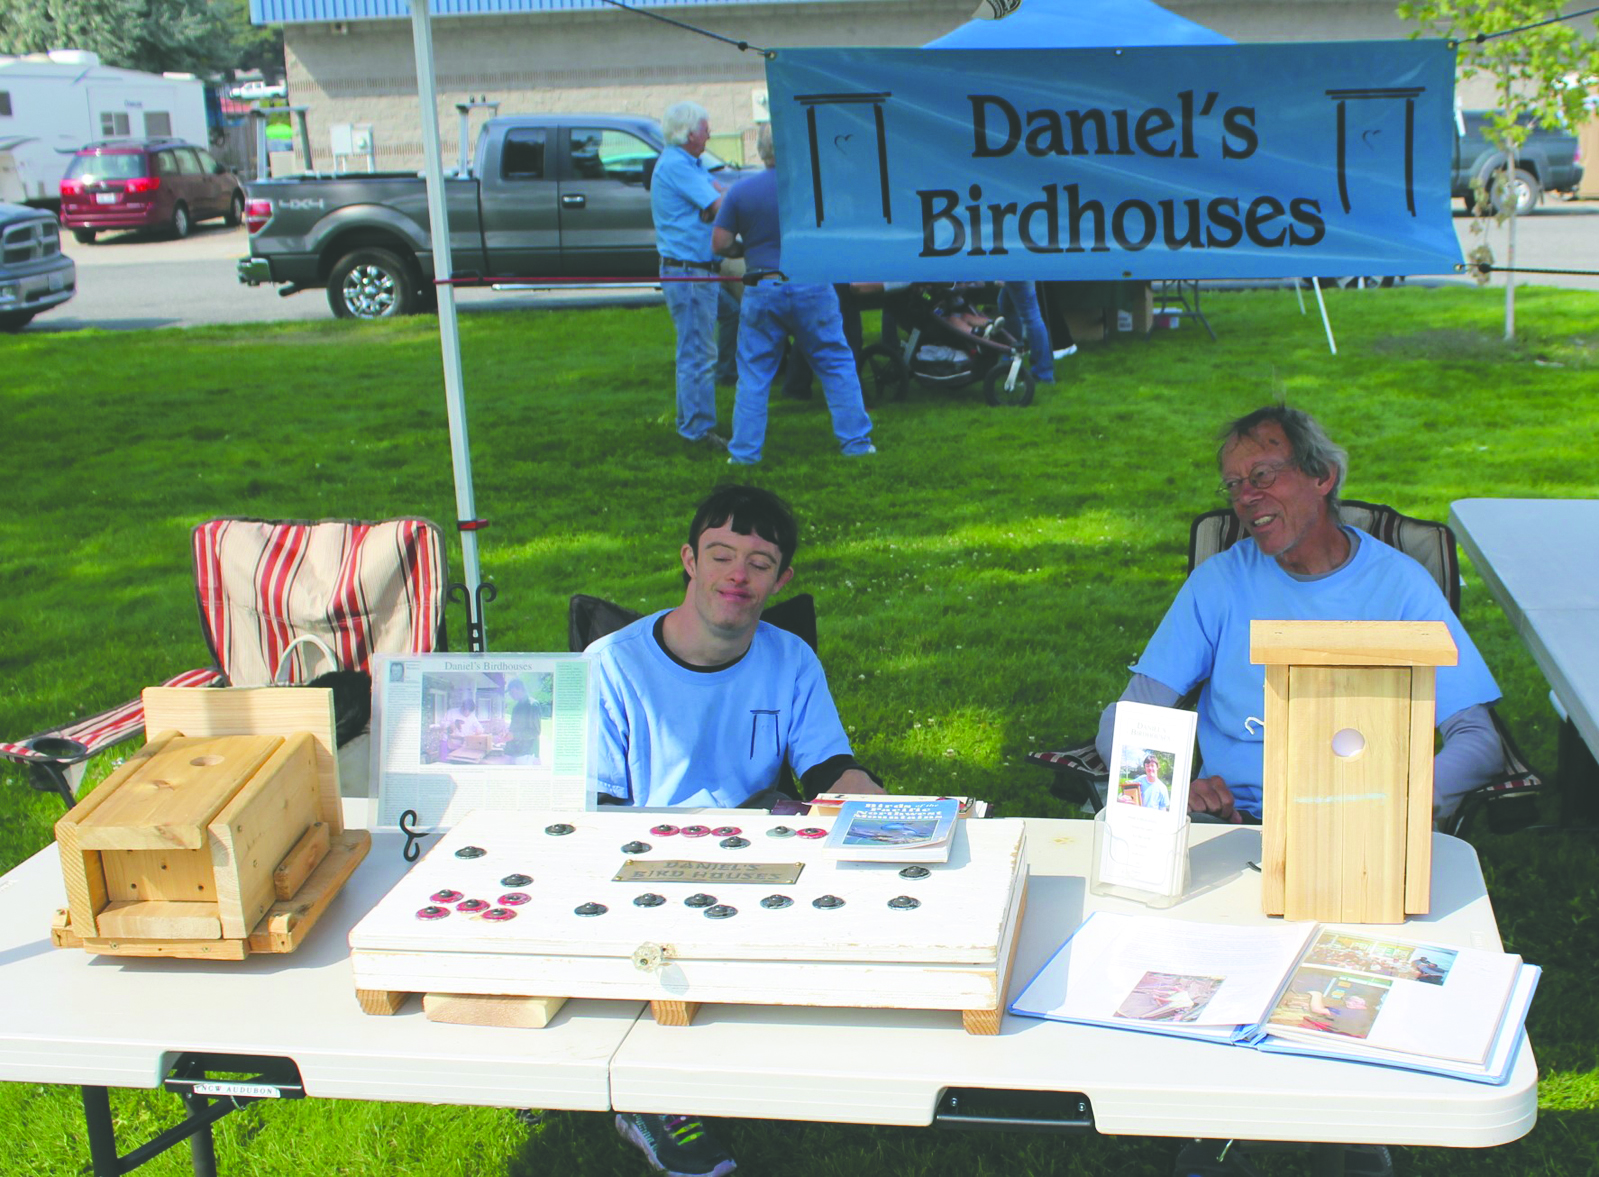 Daniel Anderman, left, with his father, Paul, came all the way from Leavenworth to display Daniel's hand-fashioned birdhouses. The box-like device seen in the foreground is actually a drilling template that Daniel uses to precisely cut the holes in the wood sections used to build the boxes.